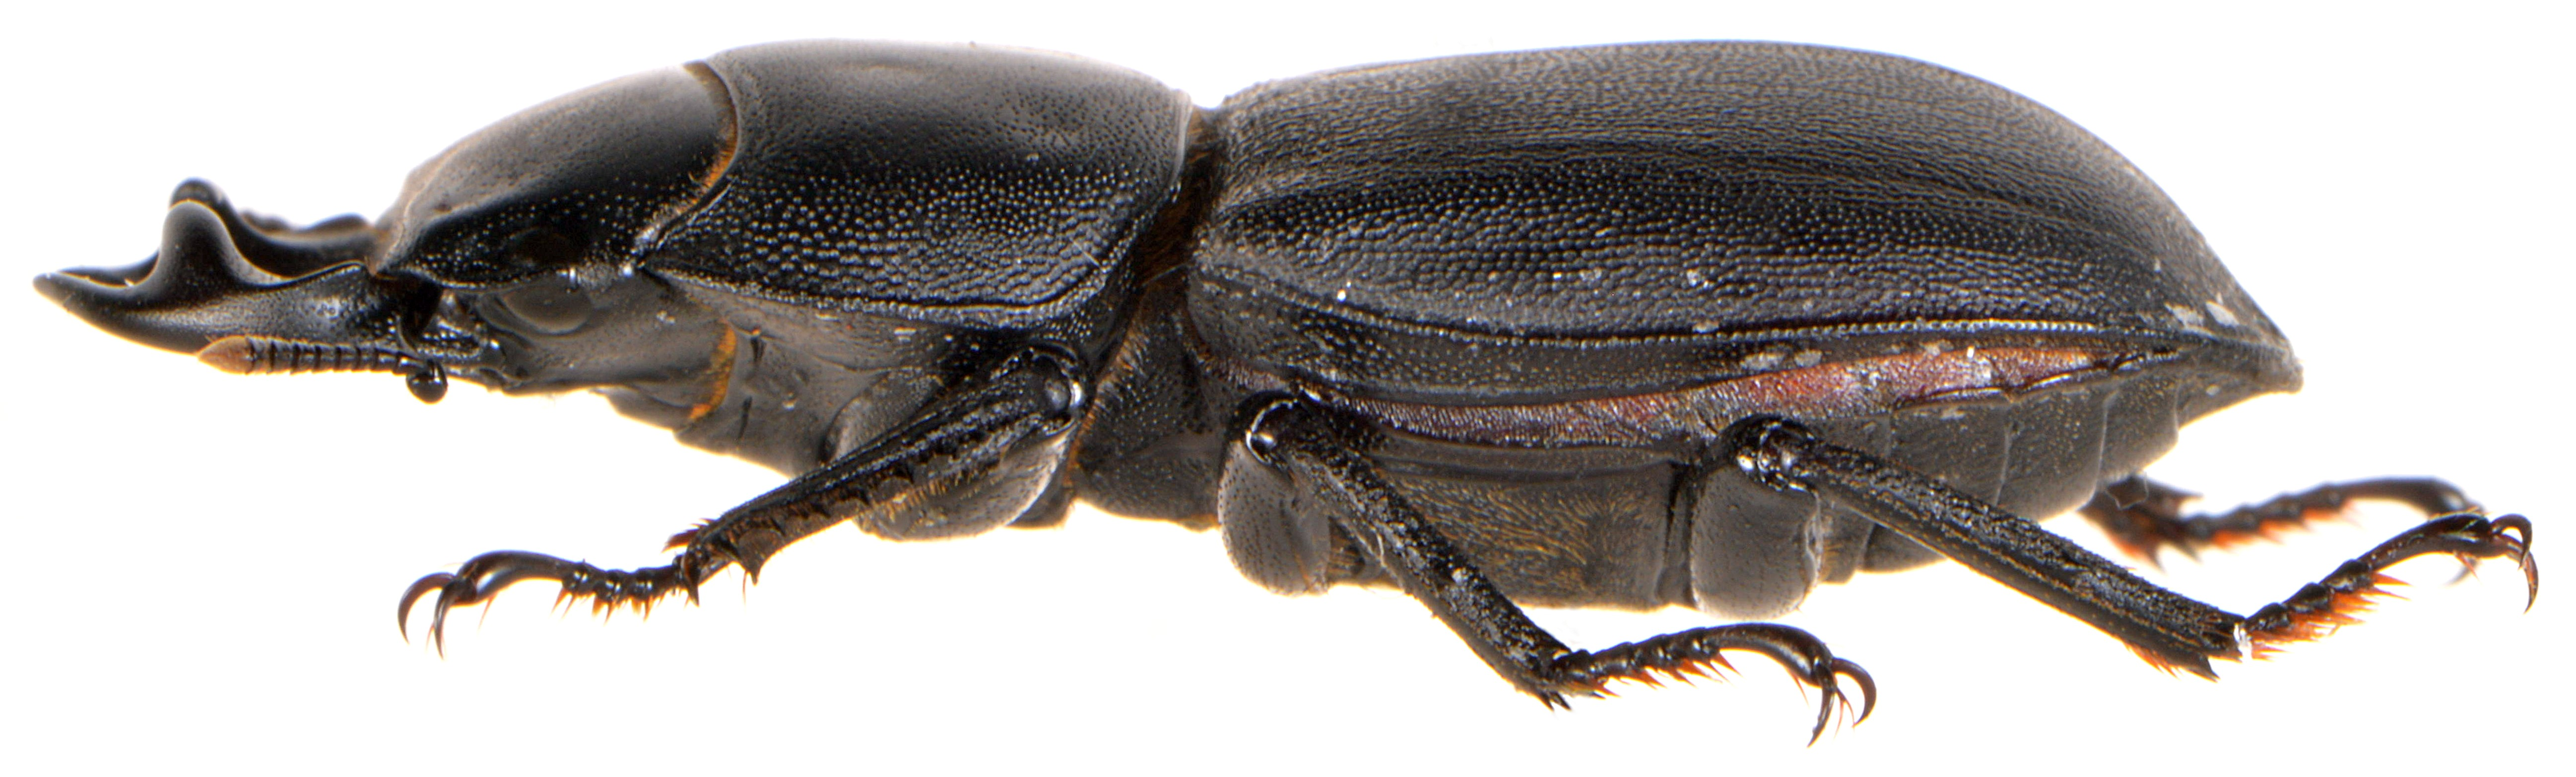 ♂ Side view